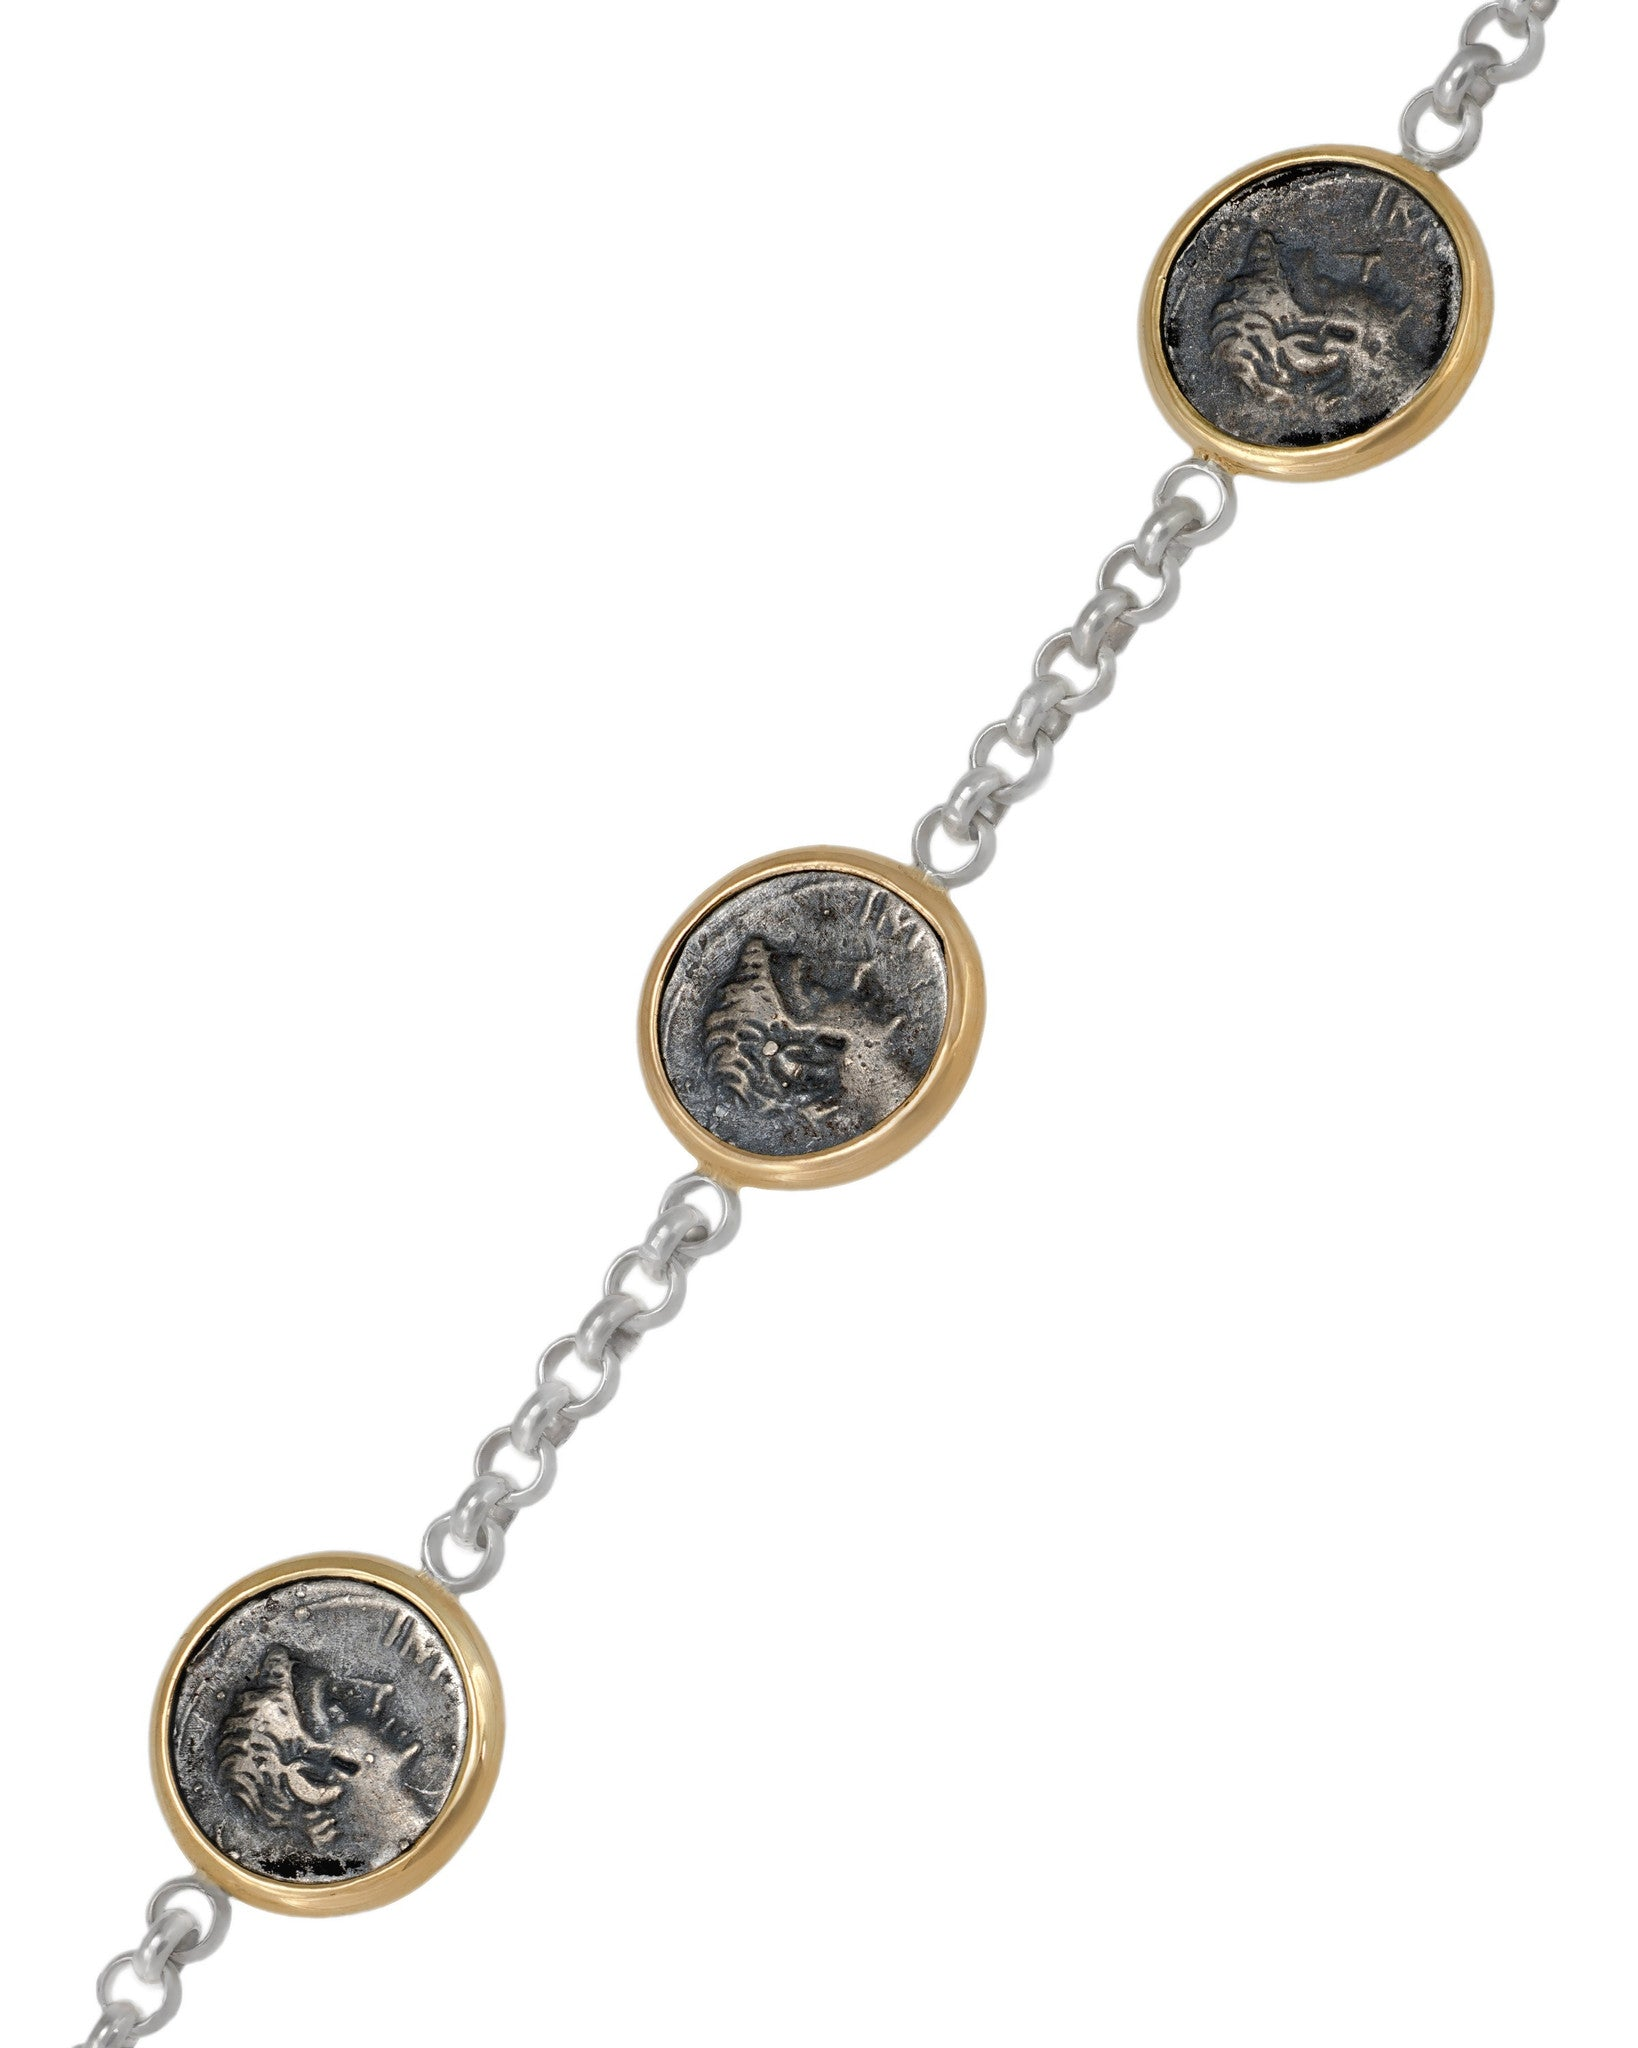 Appia 18K Yellow Gold and Sterling Silver Bracelet w/ 5 Small Antique Ottaviano Coins